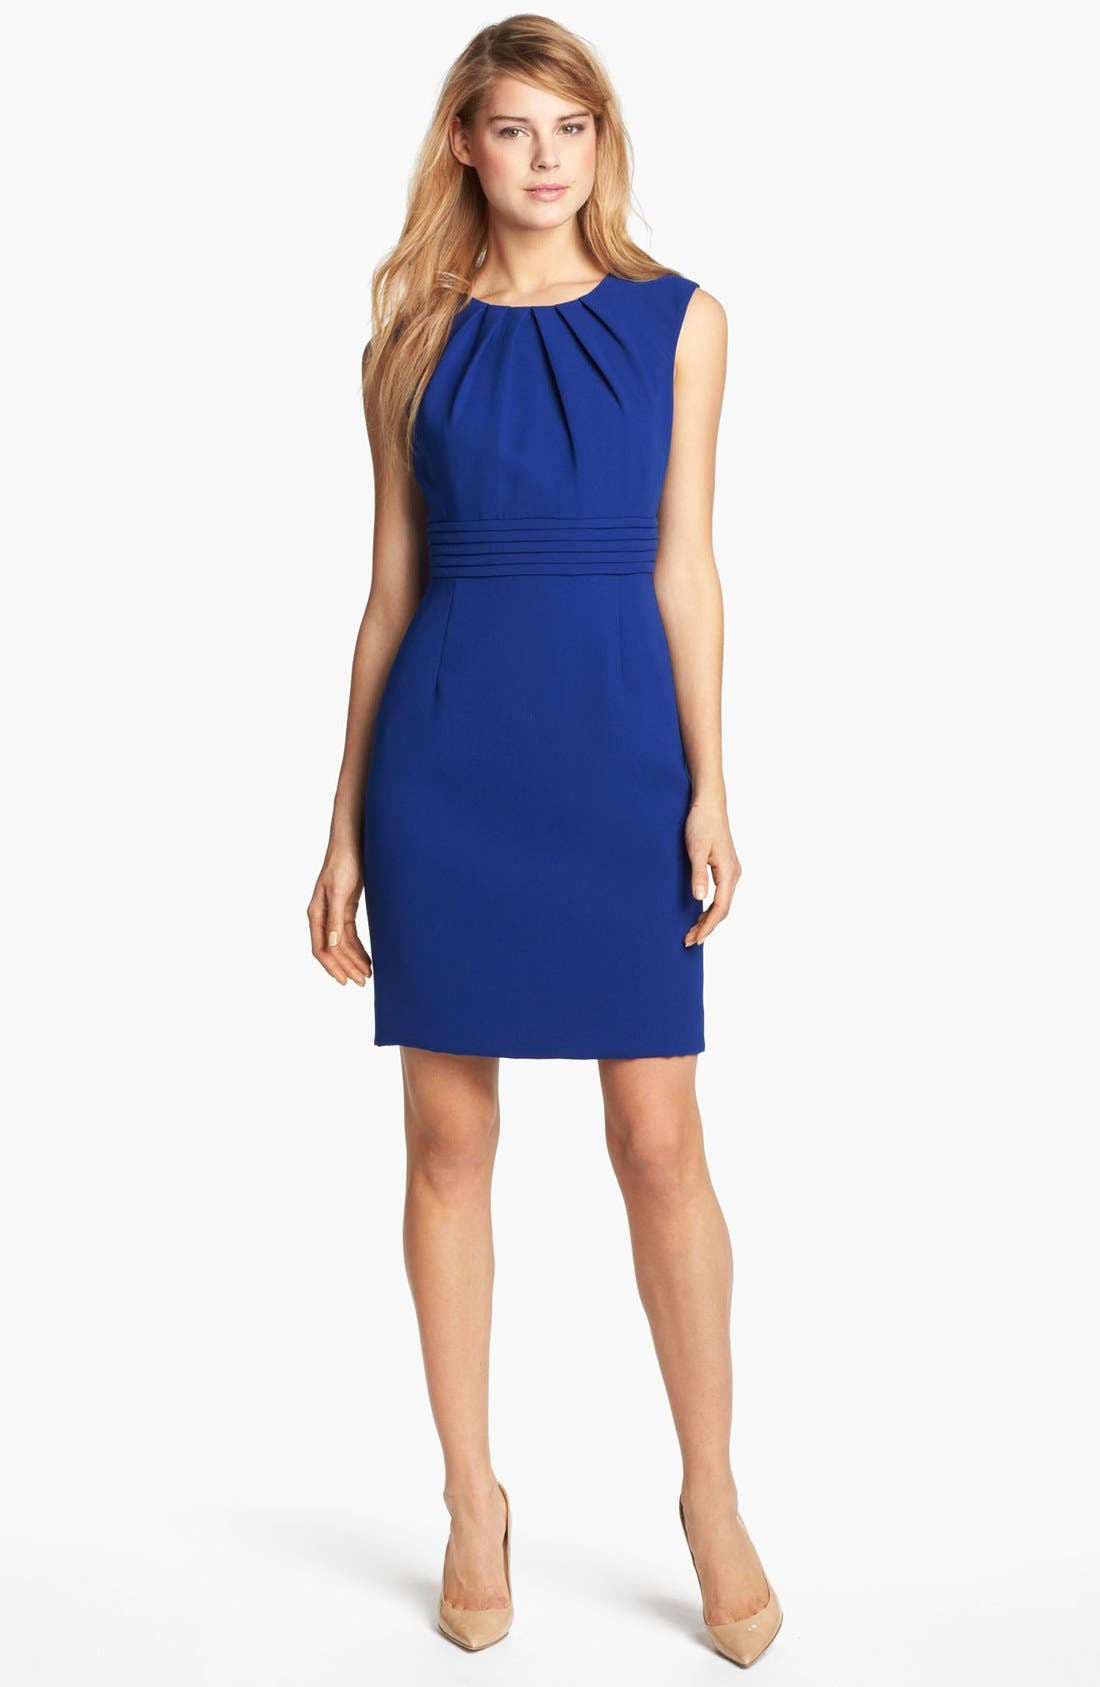 Alternate Image 1 Selected - Tahari by Arthur S. Levine Sleeveless Crepe Sheath Dress (Regular & Petite)